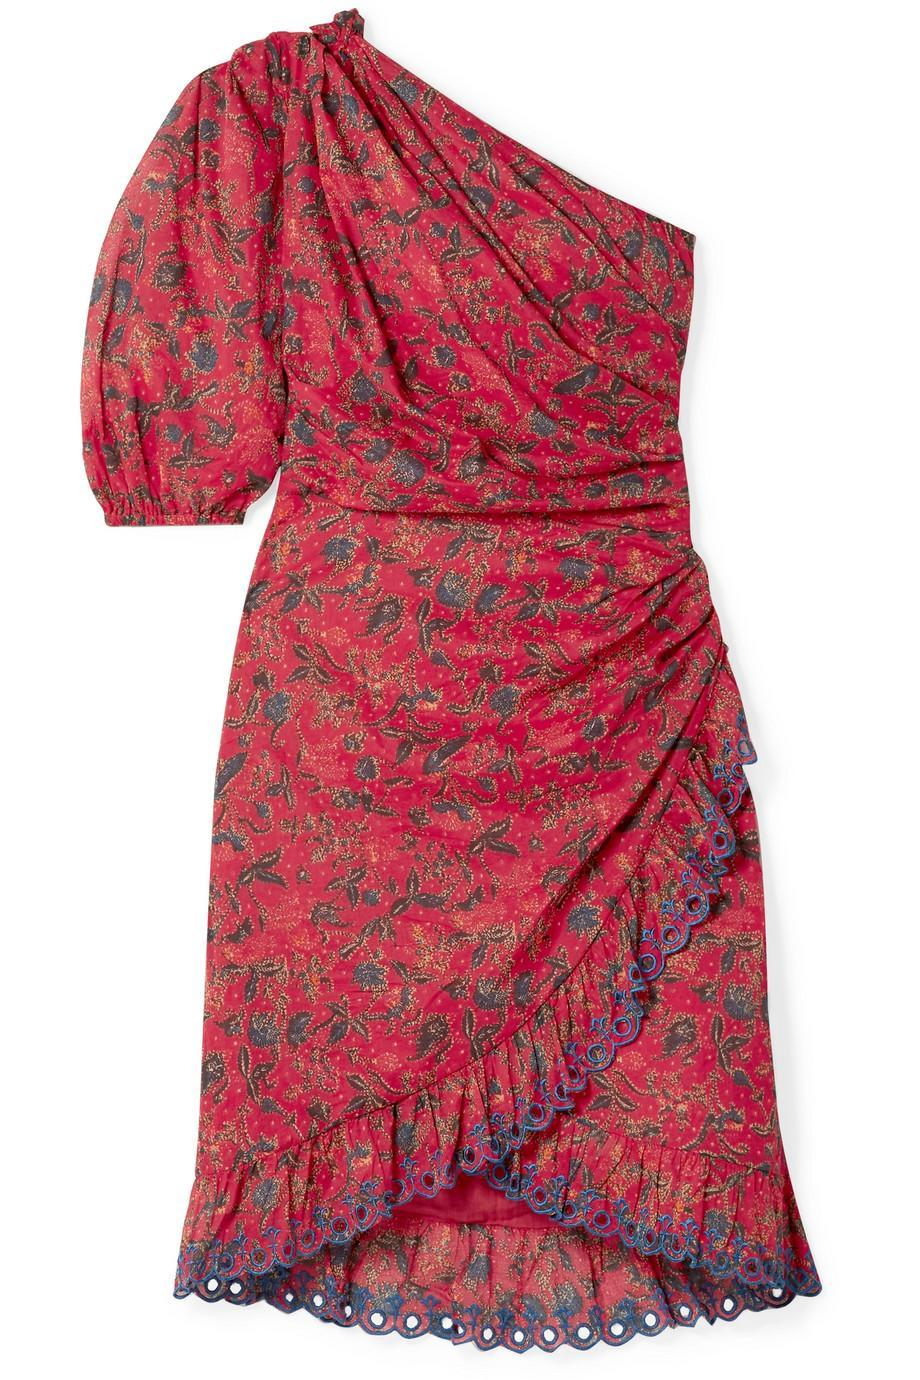 The television presenter wore Isabel Marant's £315 'Esther' dress on December 2 [Photo: Courtesy]